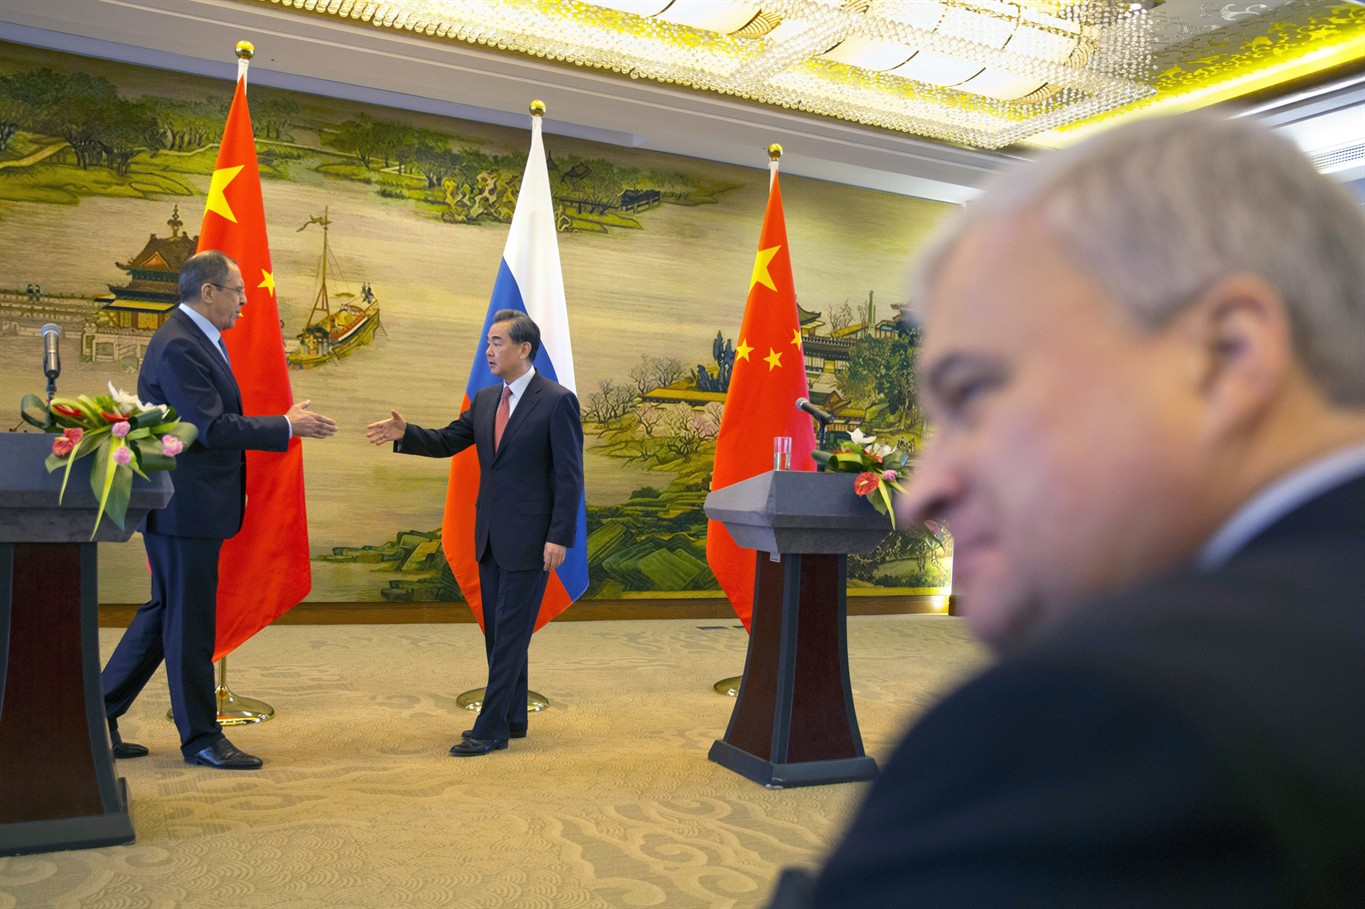 Russia china in agreement on north korea south china sea news 1130 russian foreign minister sergey lavrov left and chinese foreign minister wang yi shakes hands after a joint press conference held at the chinese foreign platinumwayz